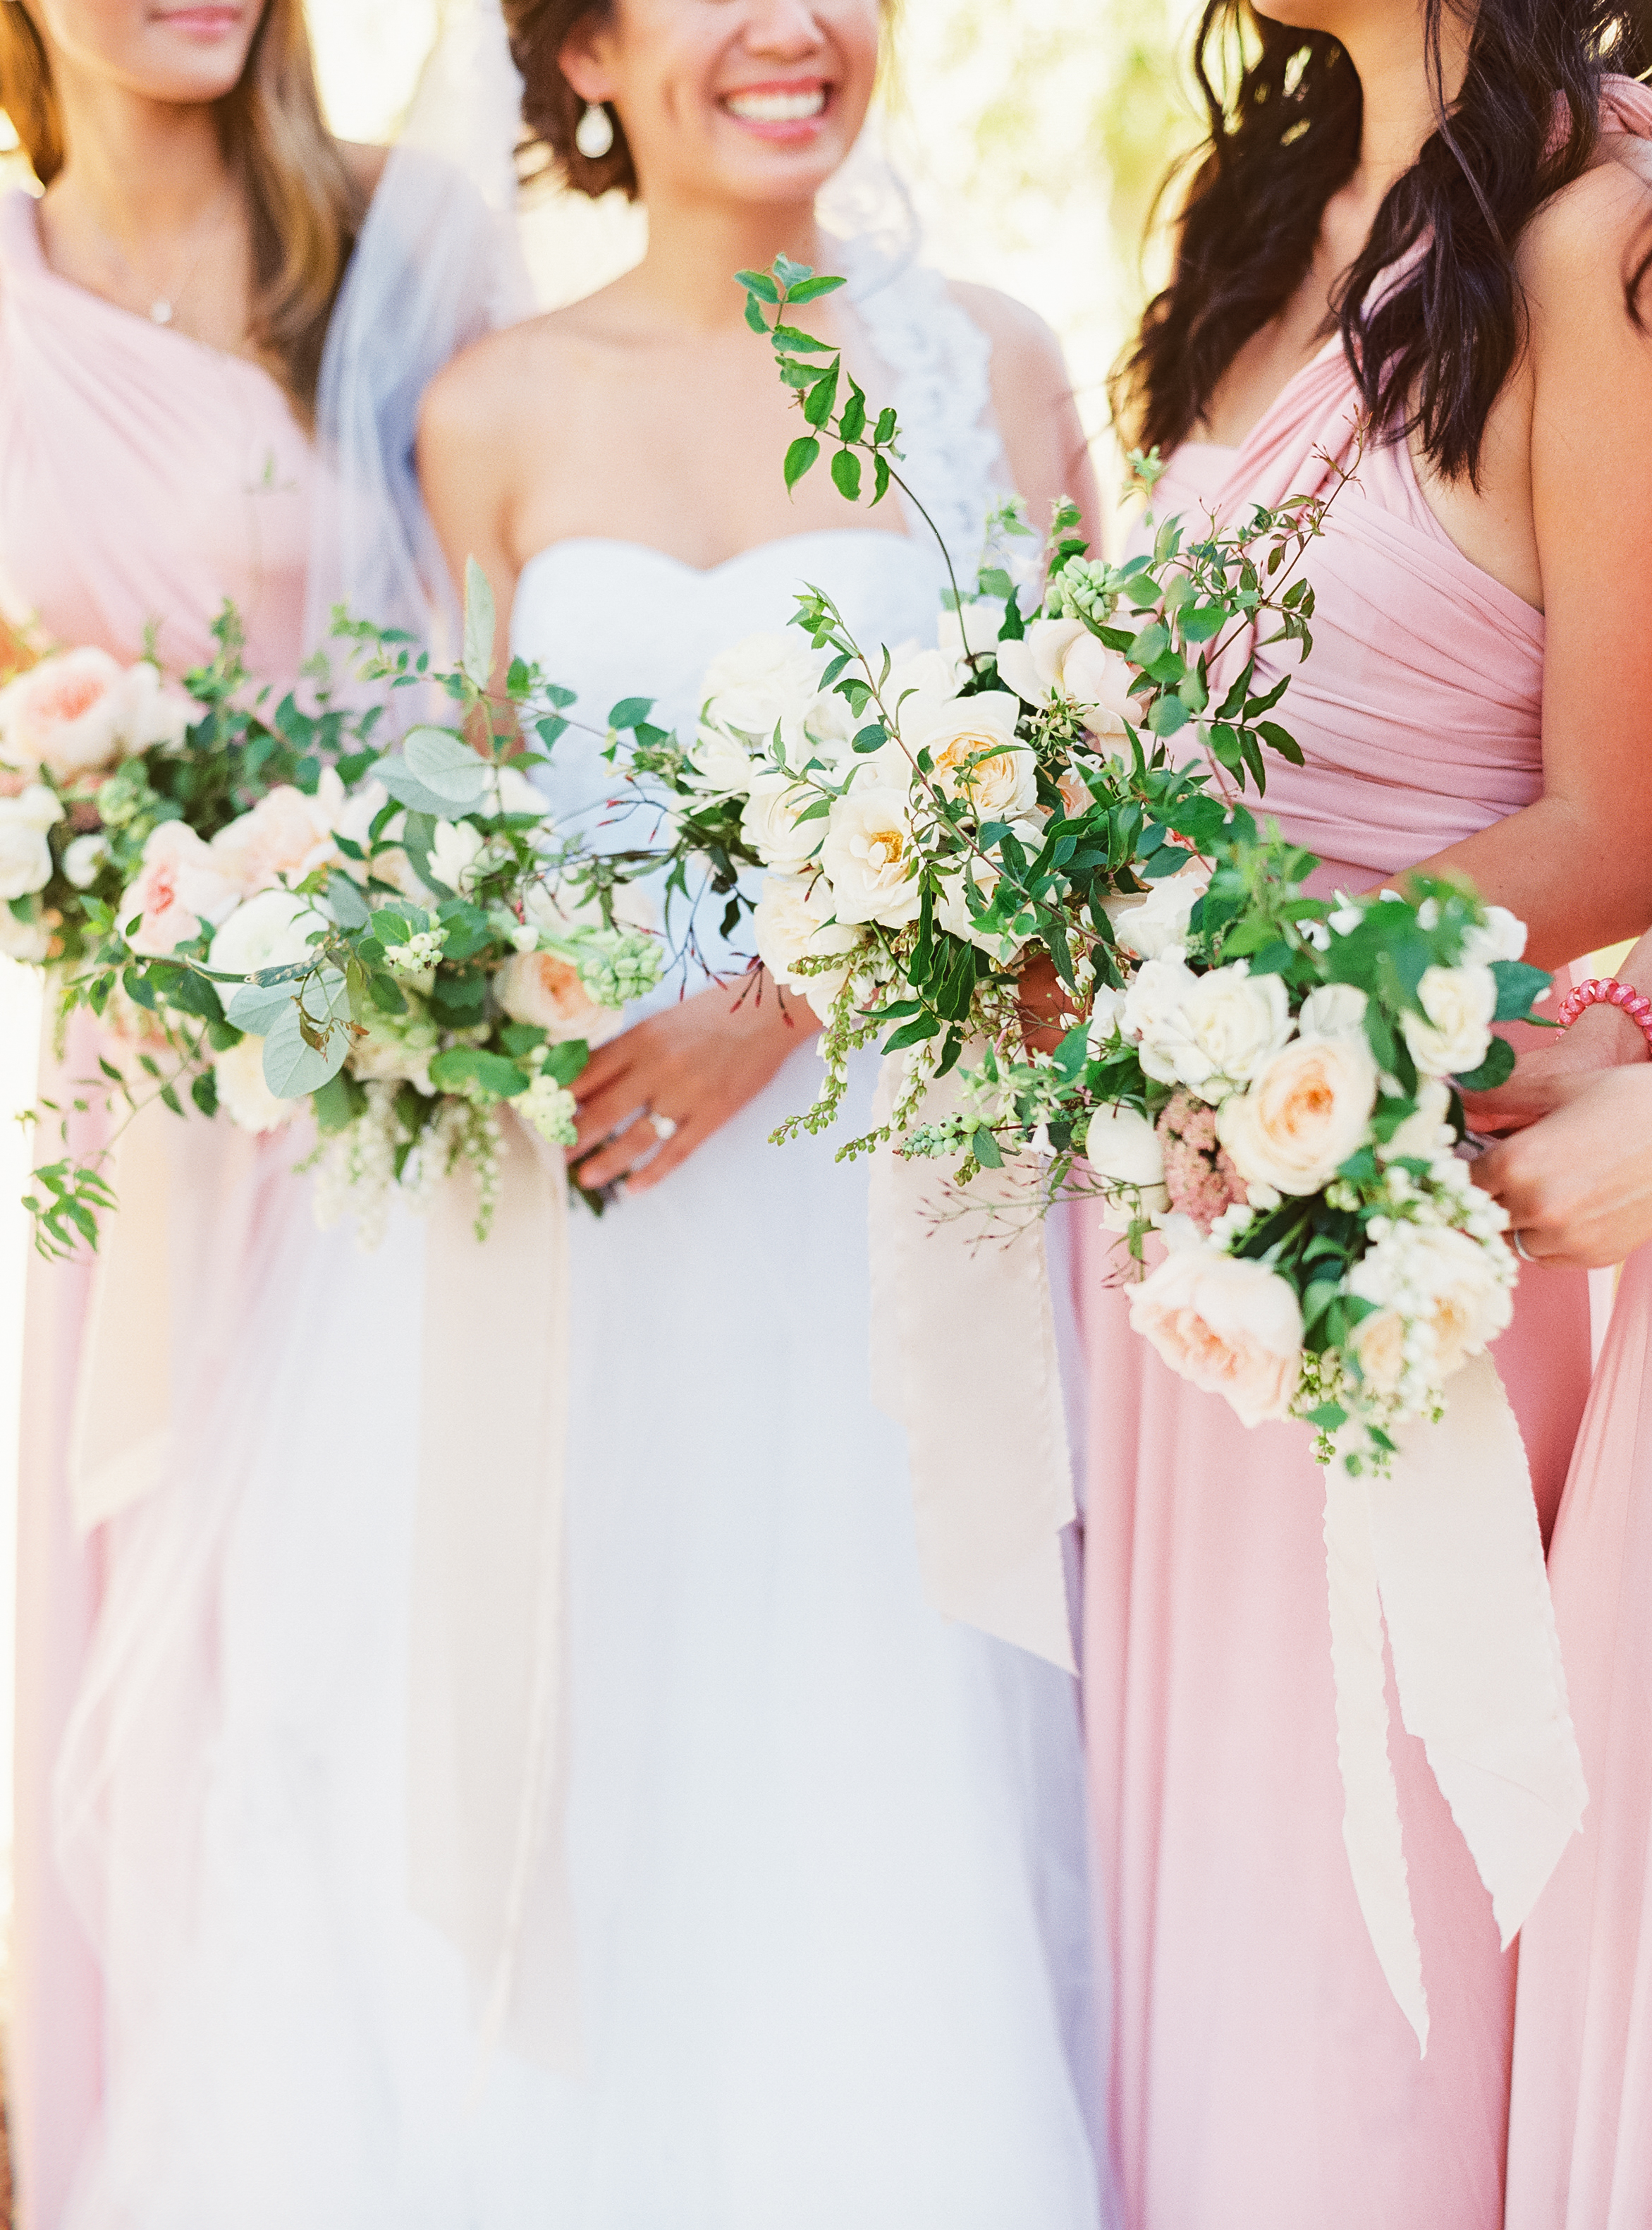 Napa Valley Wedding | Michele Beckwith | Chinese Wedding | Vineyard Wedding | Fine Art Wedding Blog | Joy Wed | Canadian Wedding Blog | Organic Wedding Bouquets